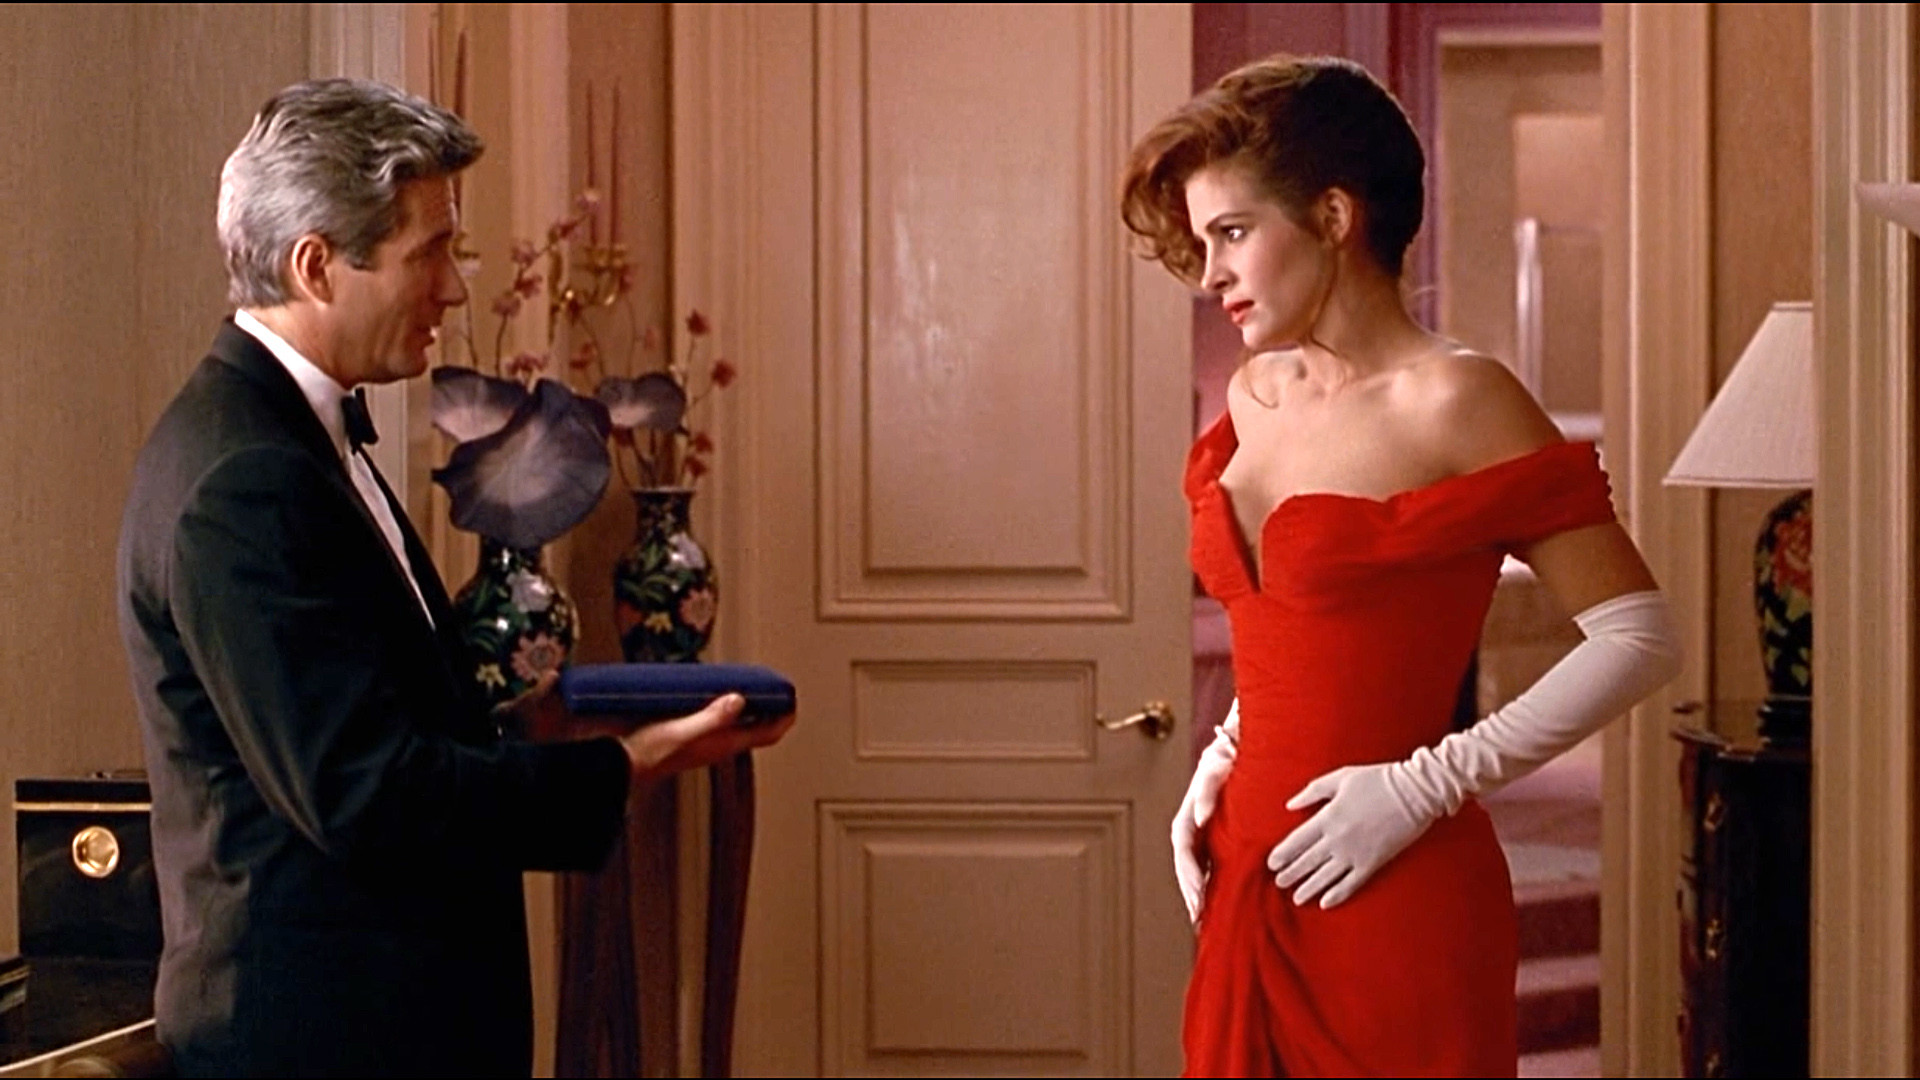 Una Cenerentola per Pretty woman